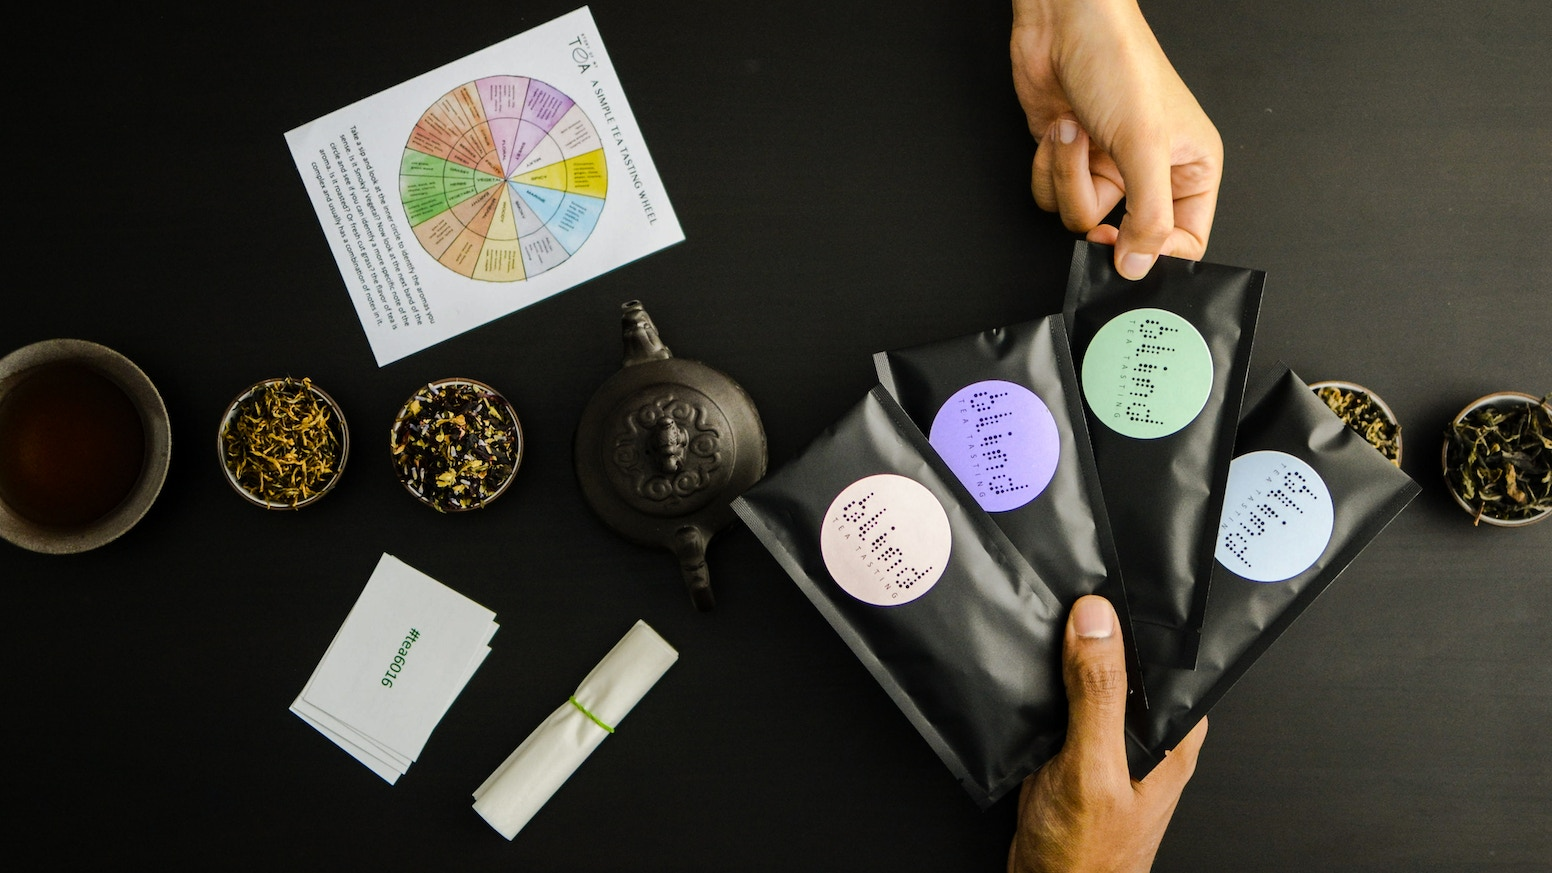 World's First Tea Tasting Game - Taste mystery tea, identify the flavors, guess the teas and origins, and improve your tasting skills.